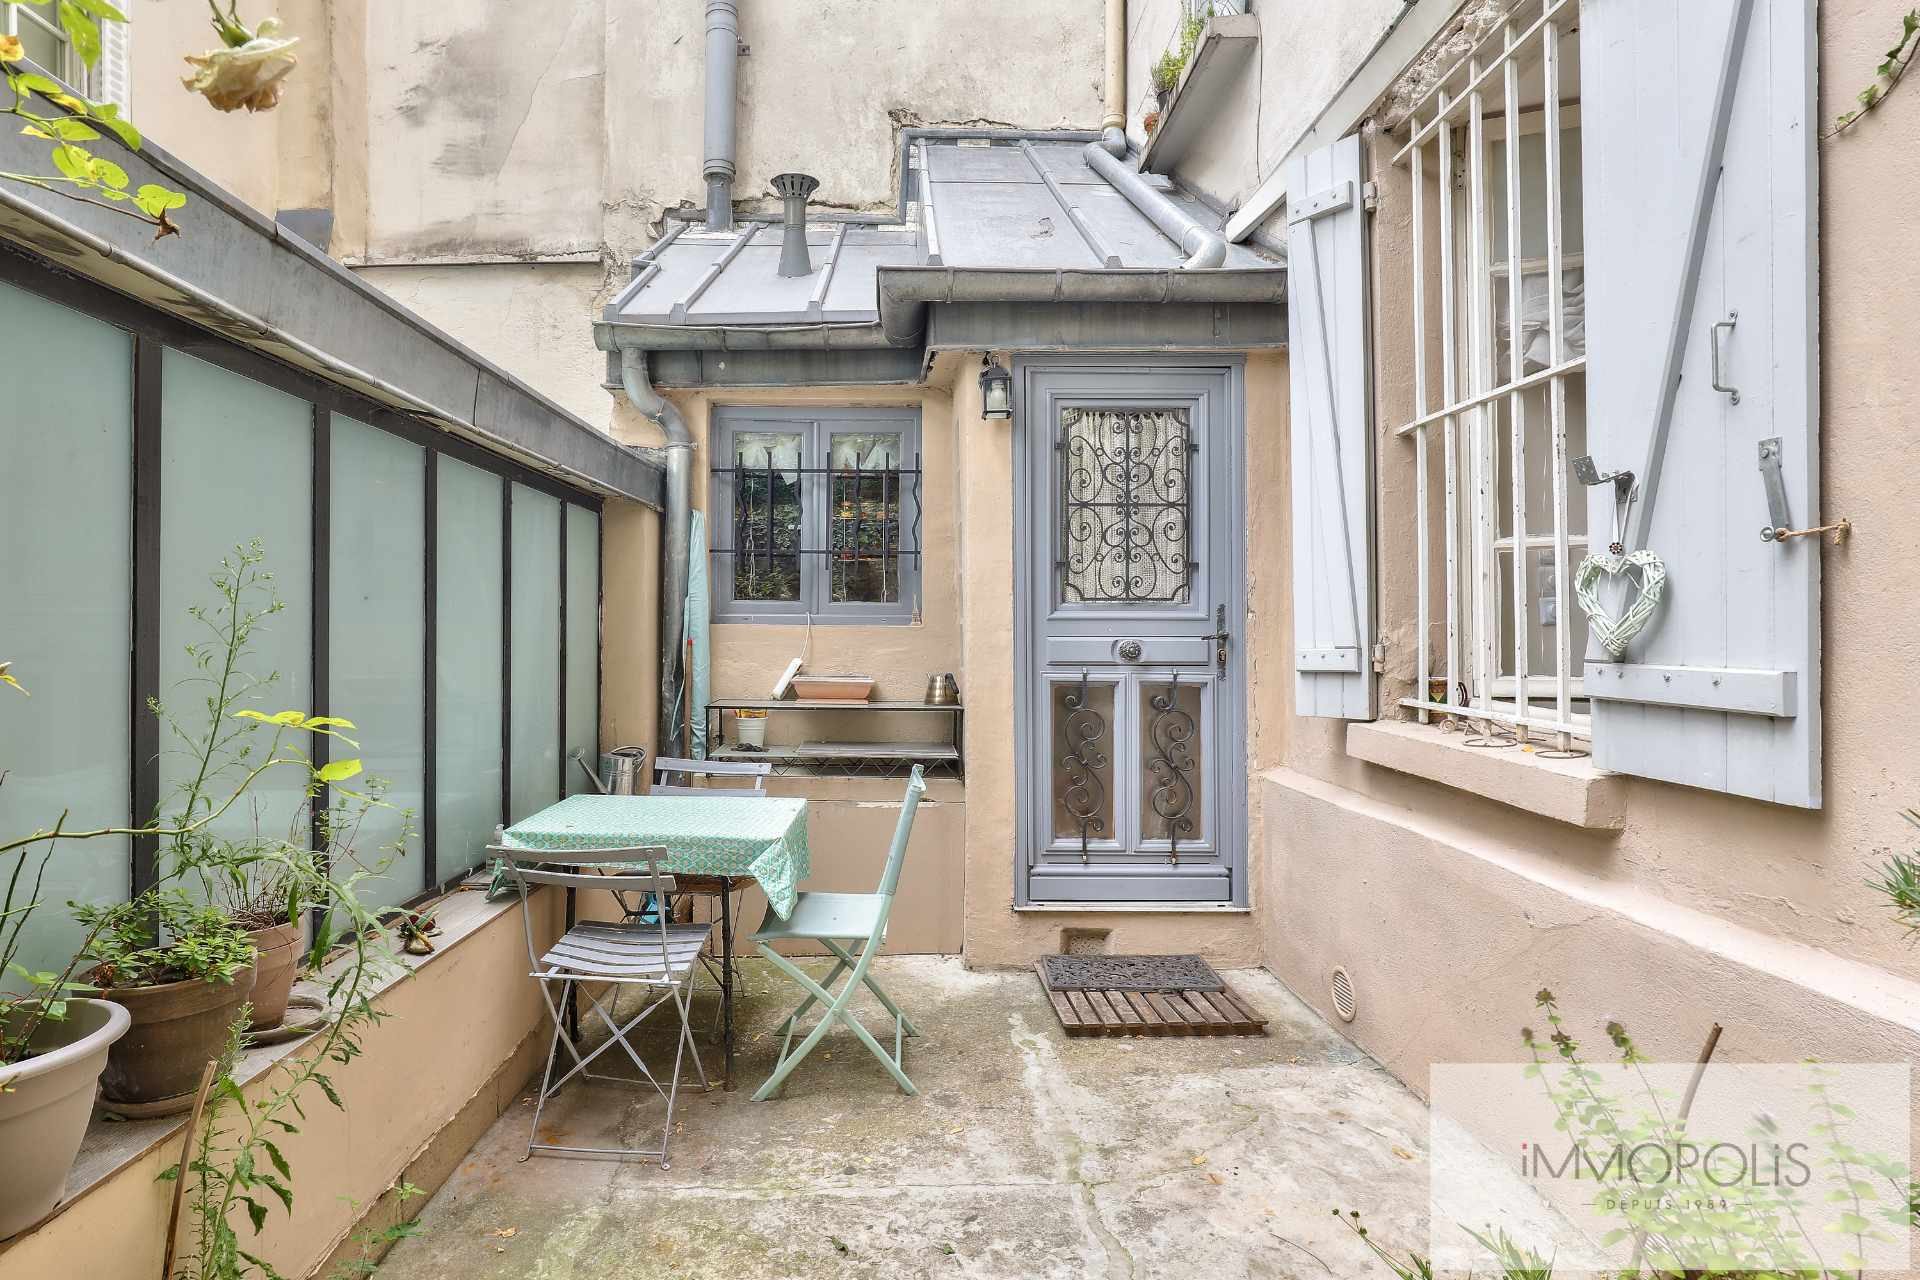 Montmartre, rue Gabrielle, beautiful 2 rooms completely renovated with stones, bricks and exposed beams: like a house! 3